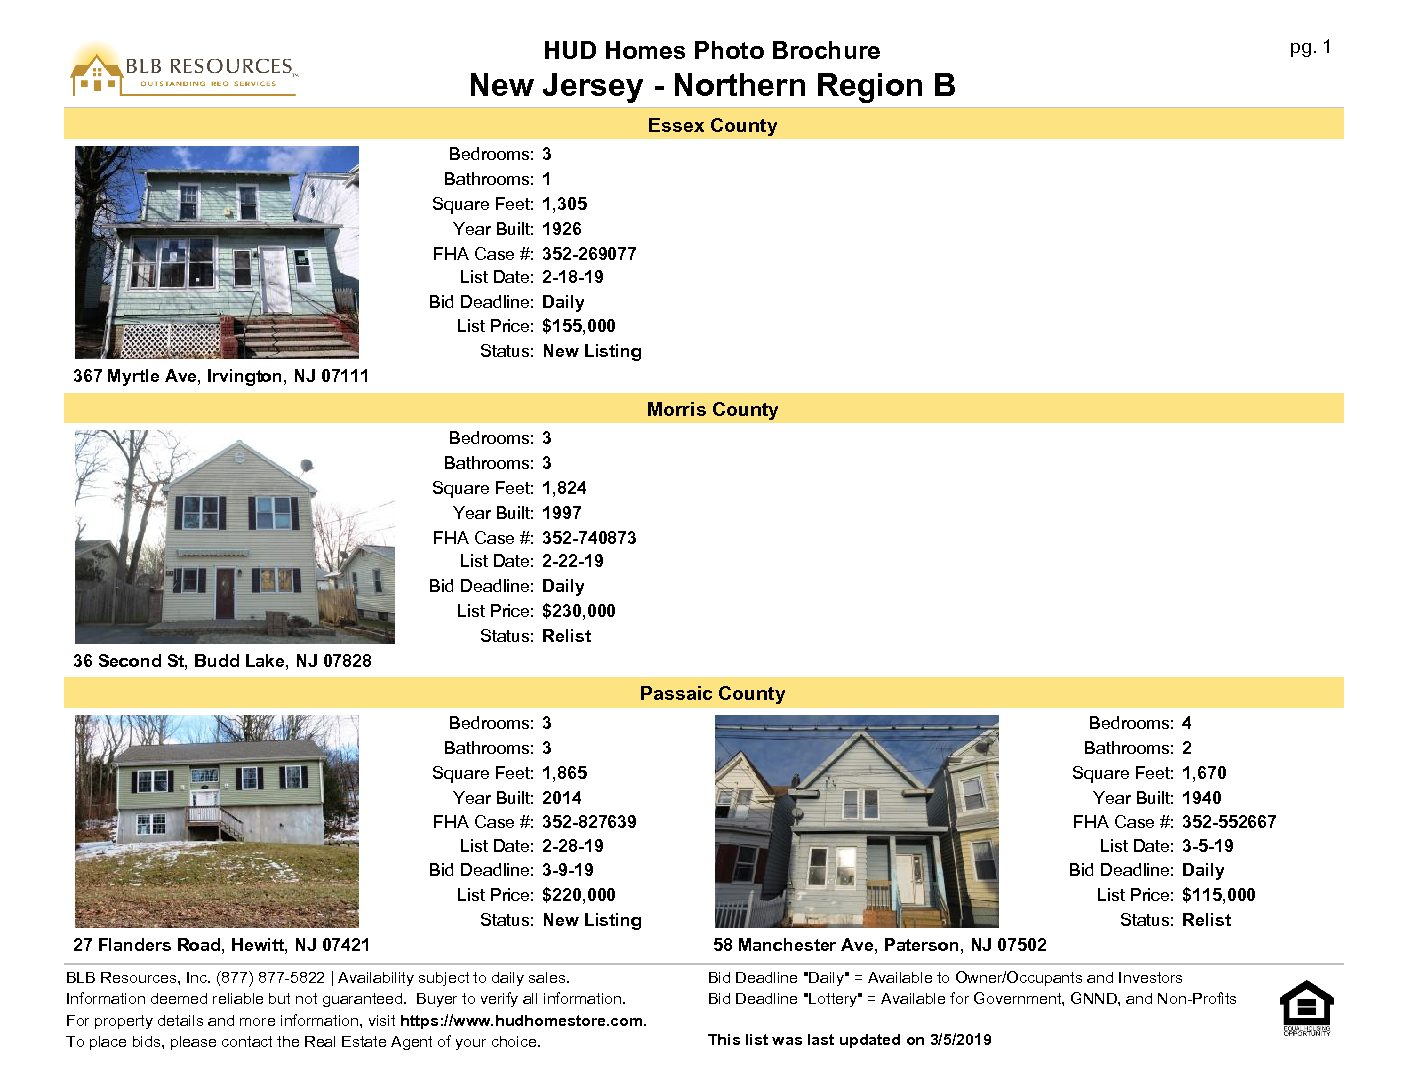 March 5 2019 New Jersey Northern Region Hud Home Listing